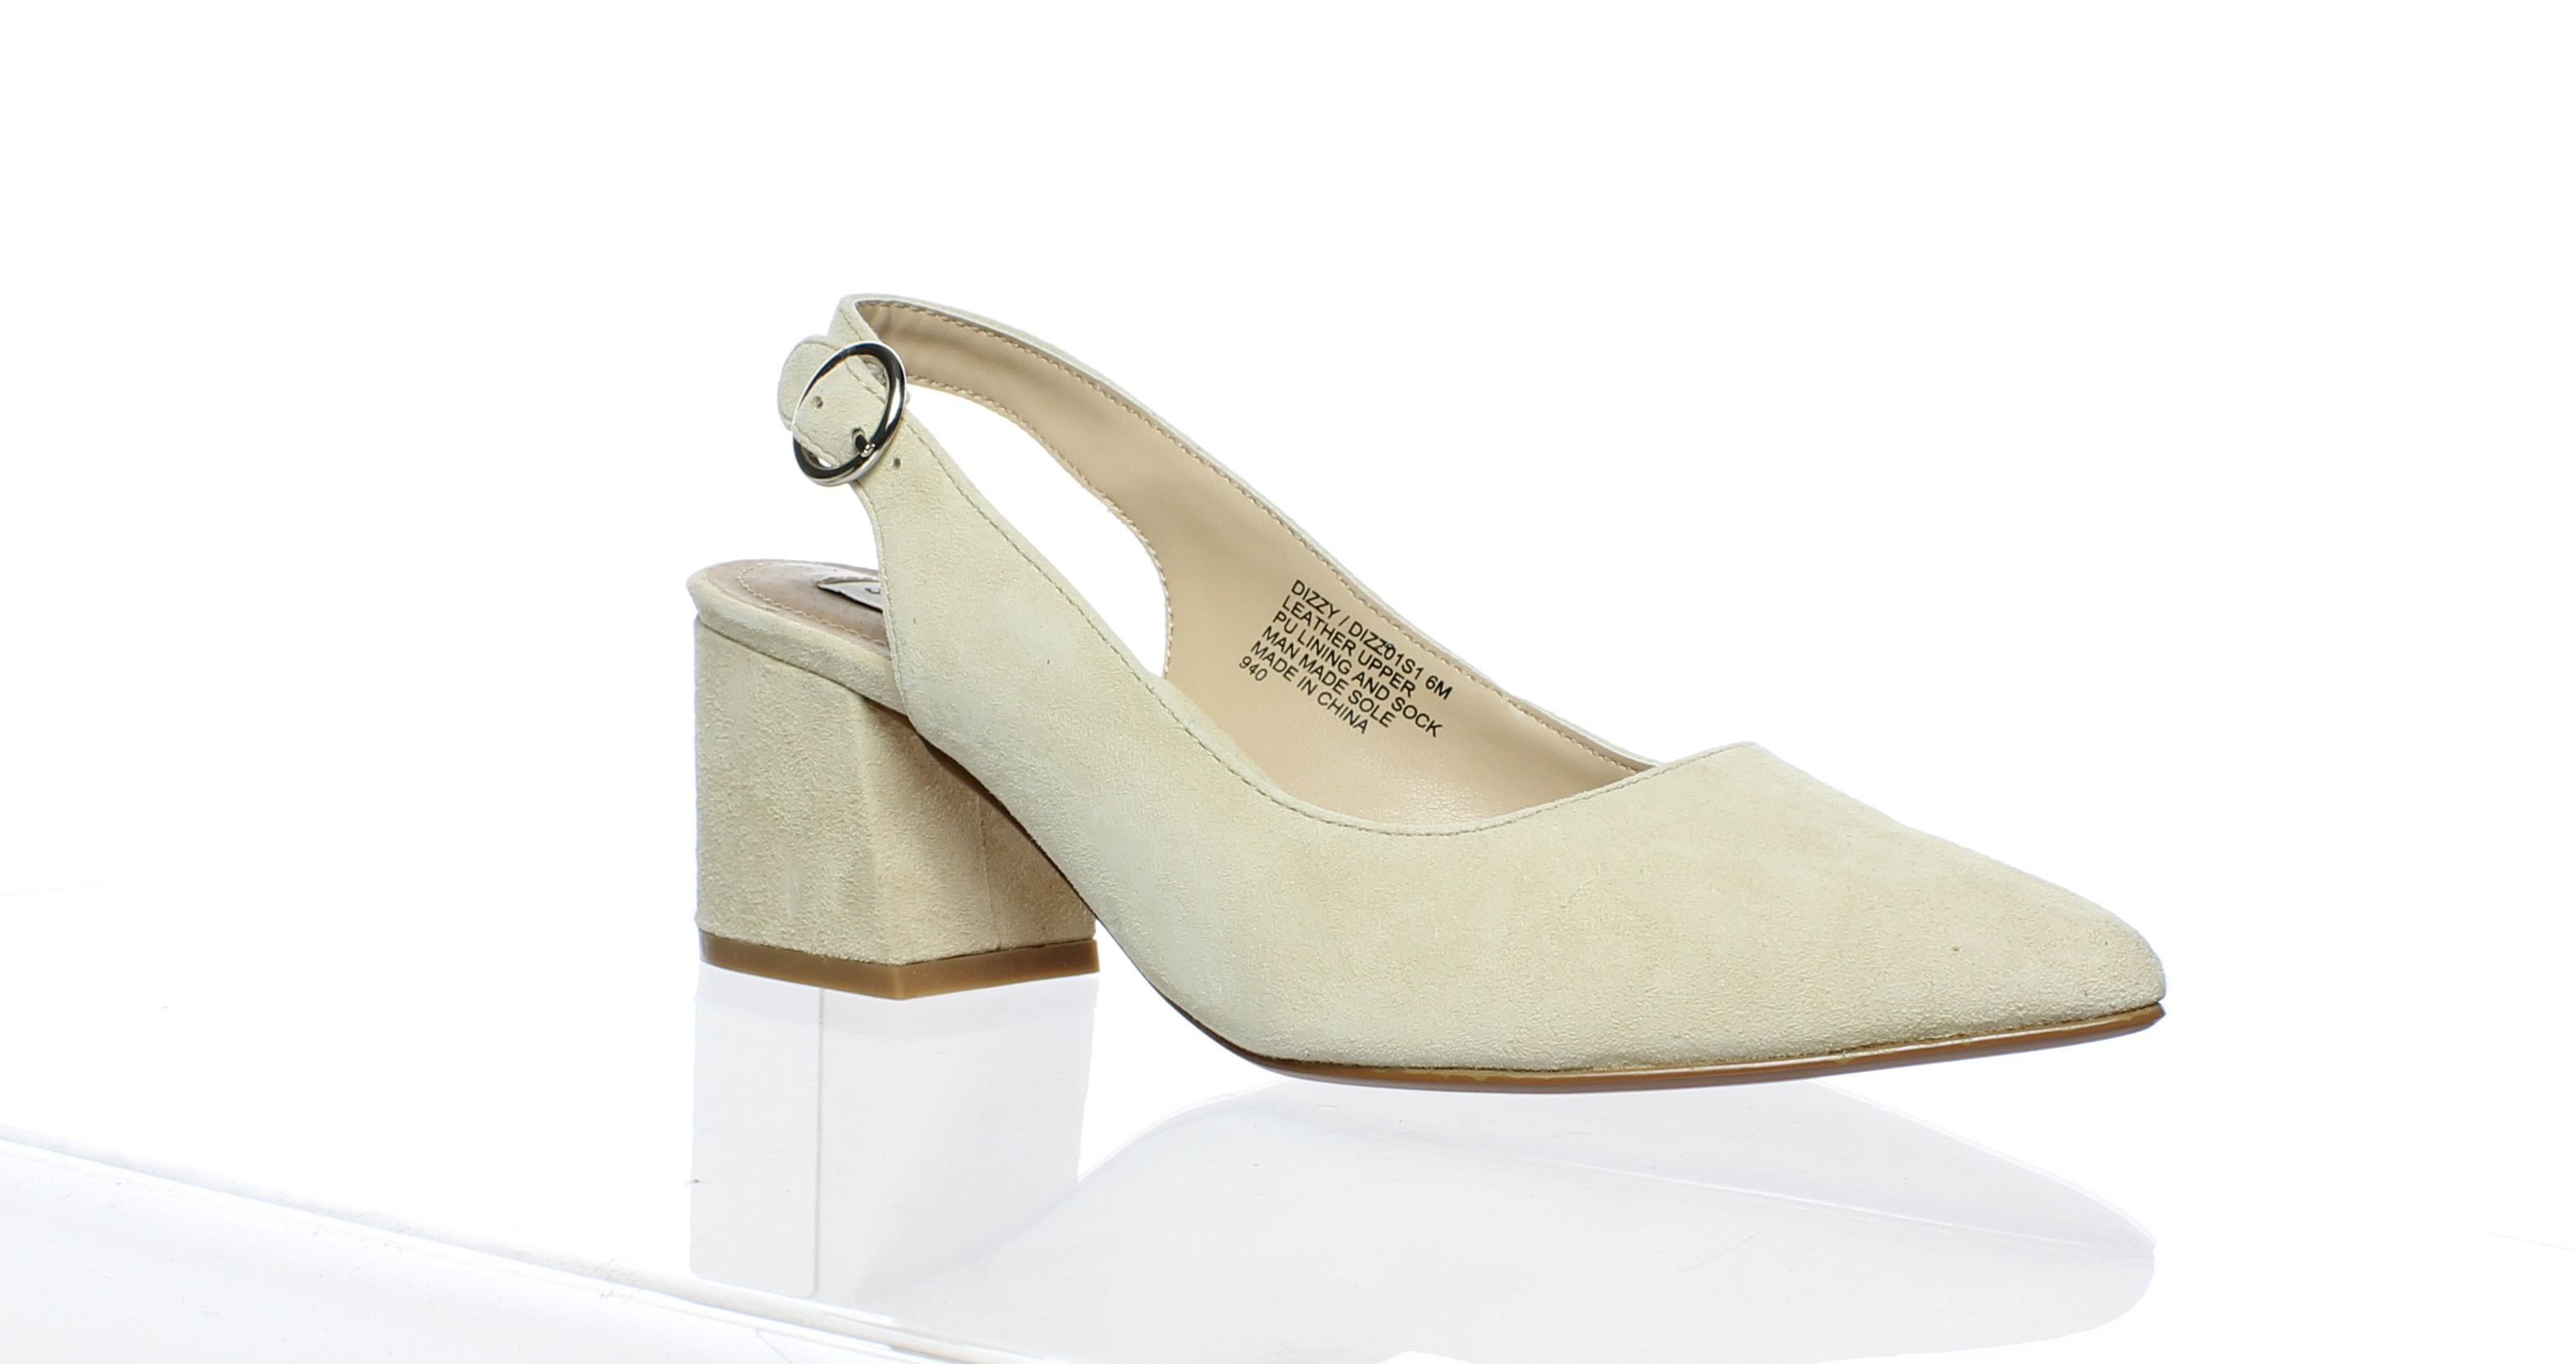 aa0c685fa6d Details about Steve Madden Womens Dizzy Nude Suede Slingbacks Size 6 (62430)